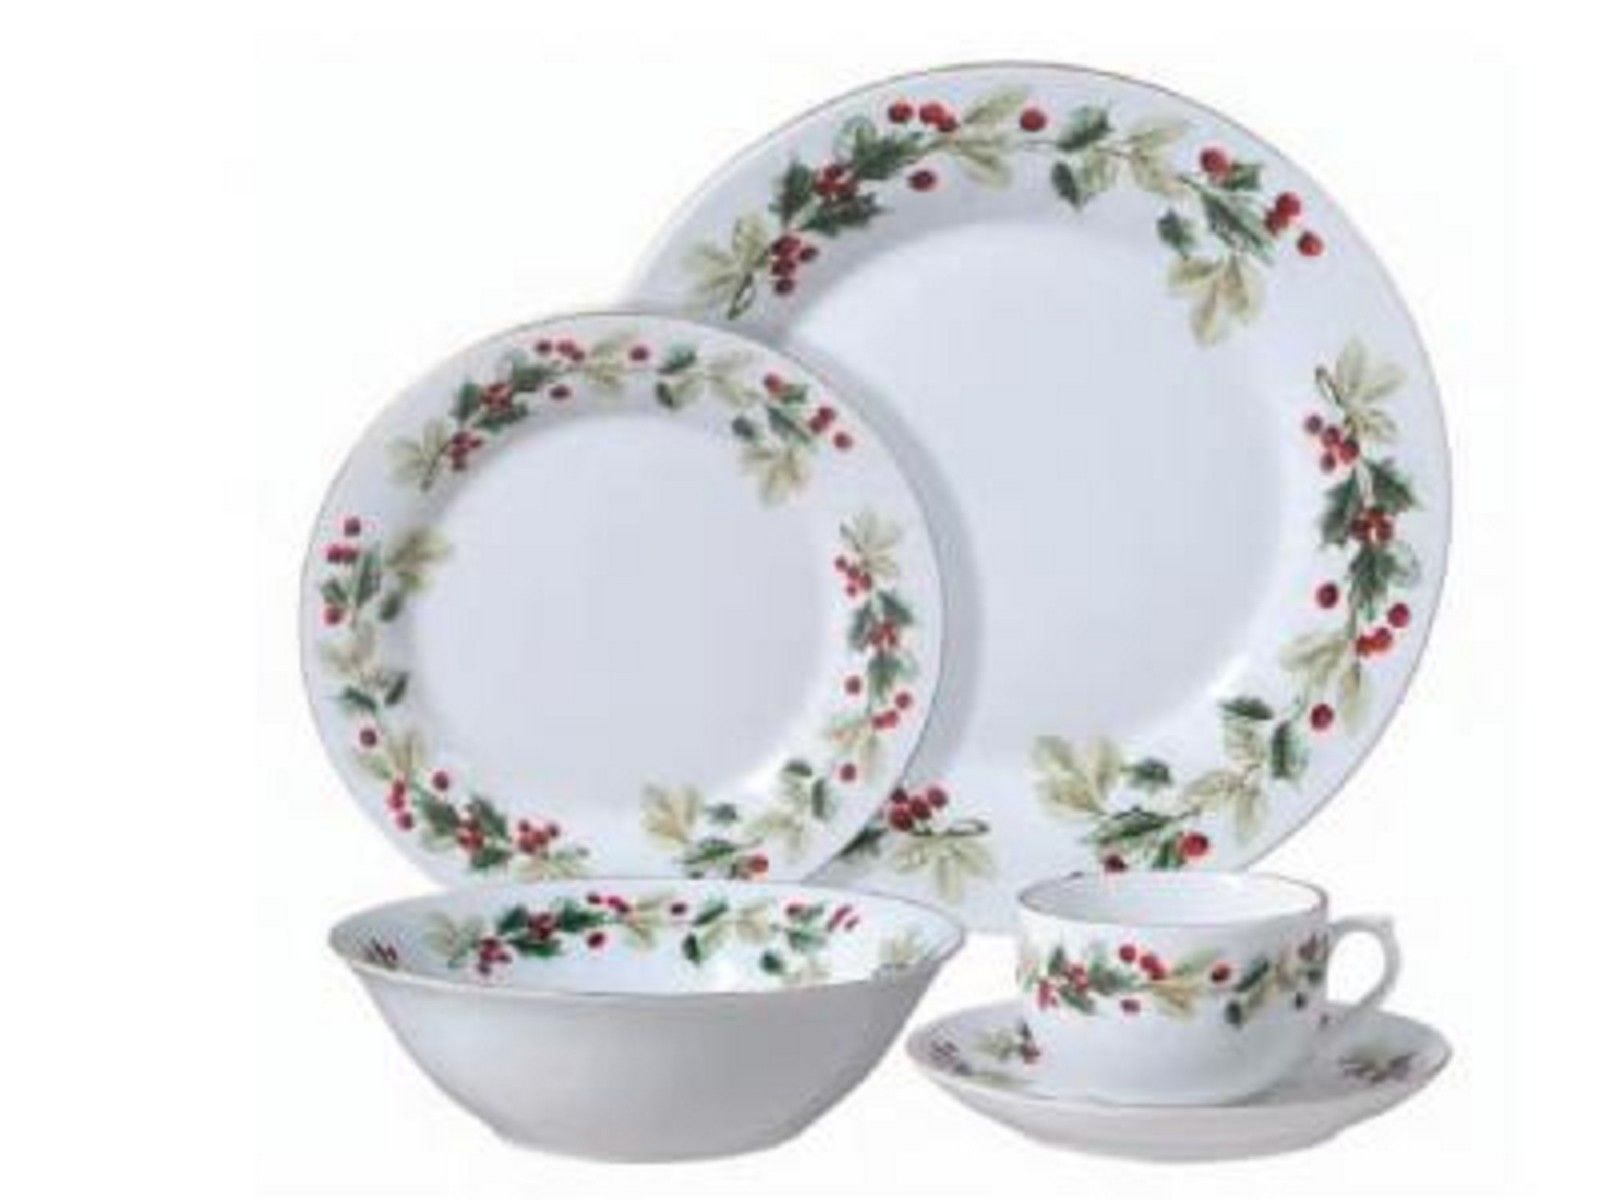 Holiday classy hollies and berries 20 piece dinnerware set dinner